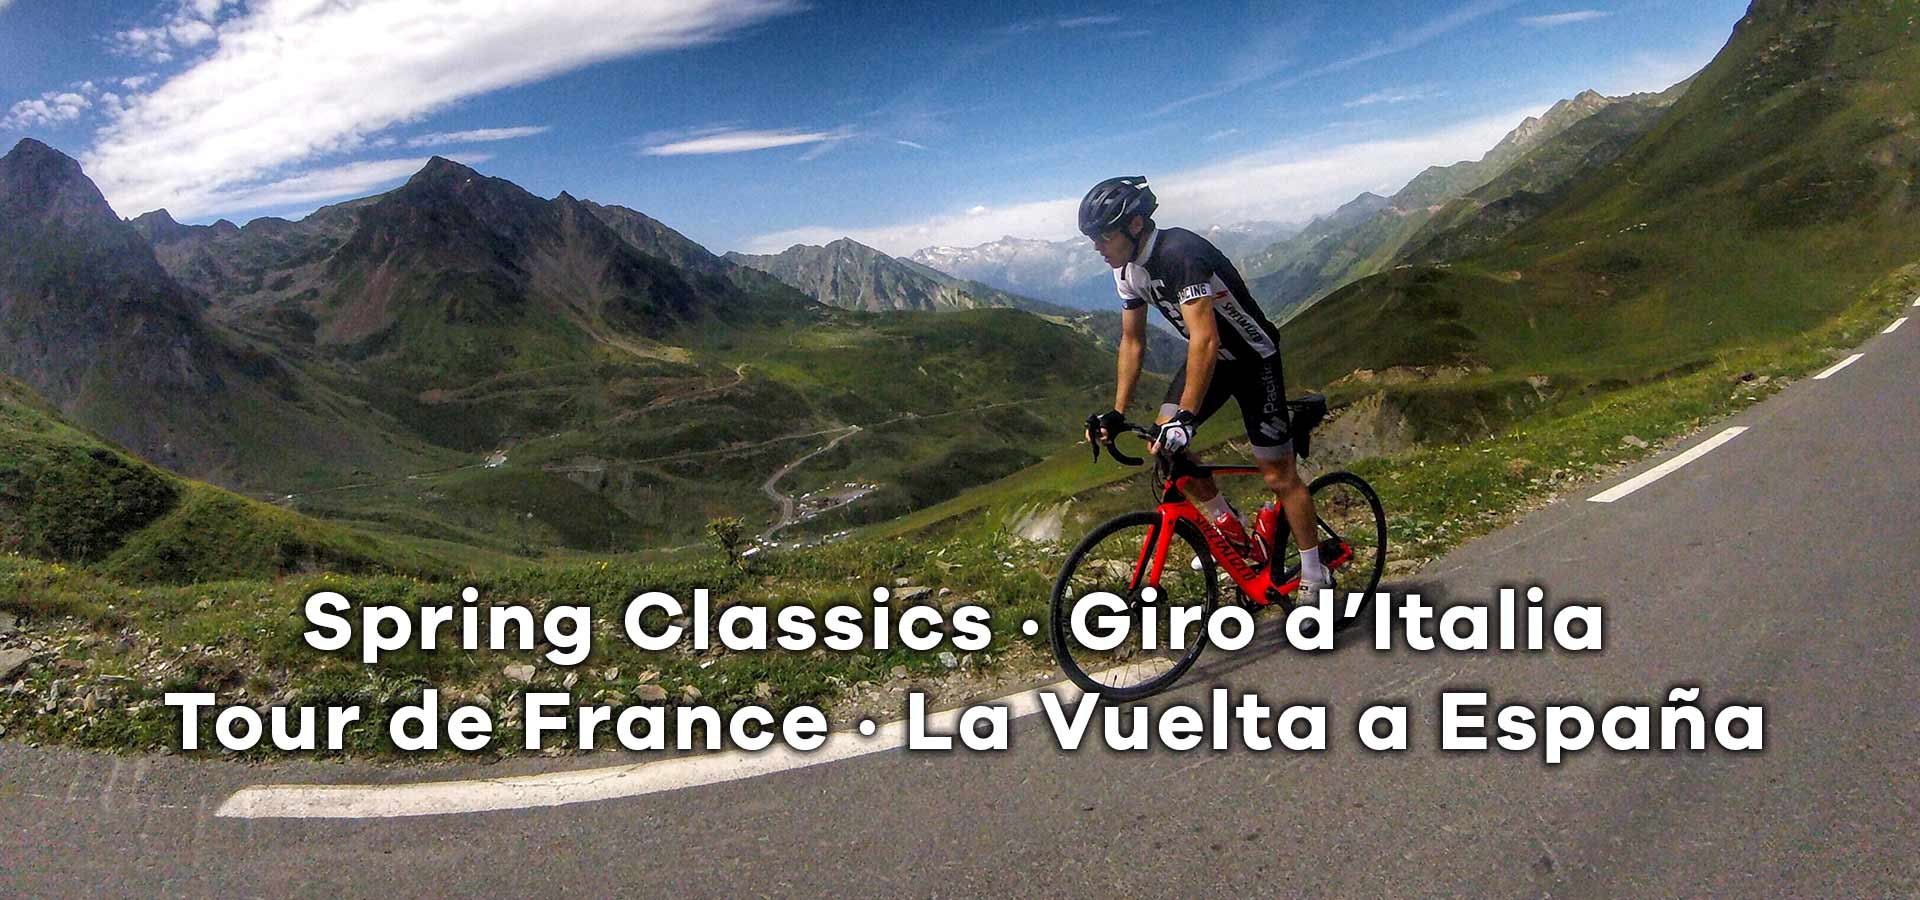 Cycling Tours to the Spring Classics, Cycling Tours to the Giro d'Italia, Cycling Tours to the Tour de France, Cycling Tours to La Vuelta